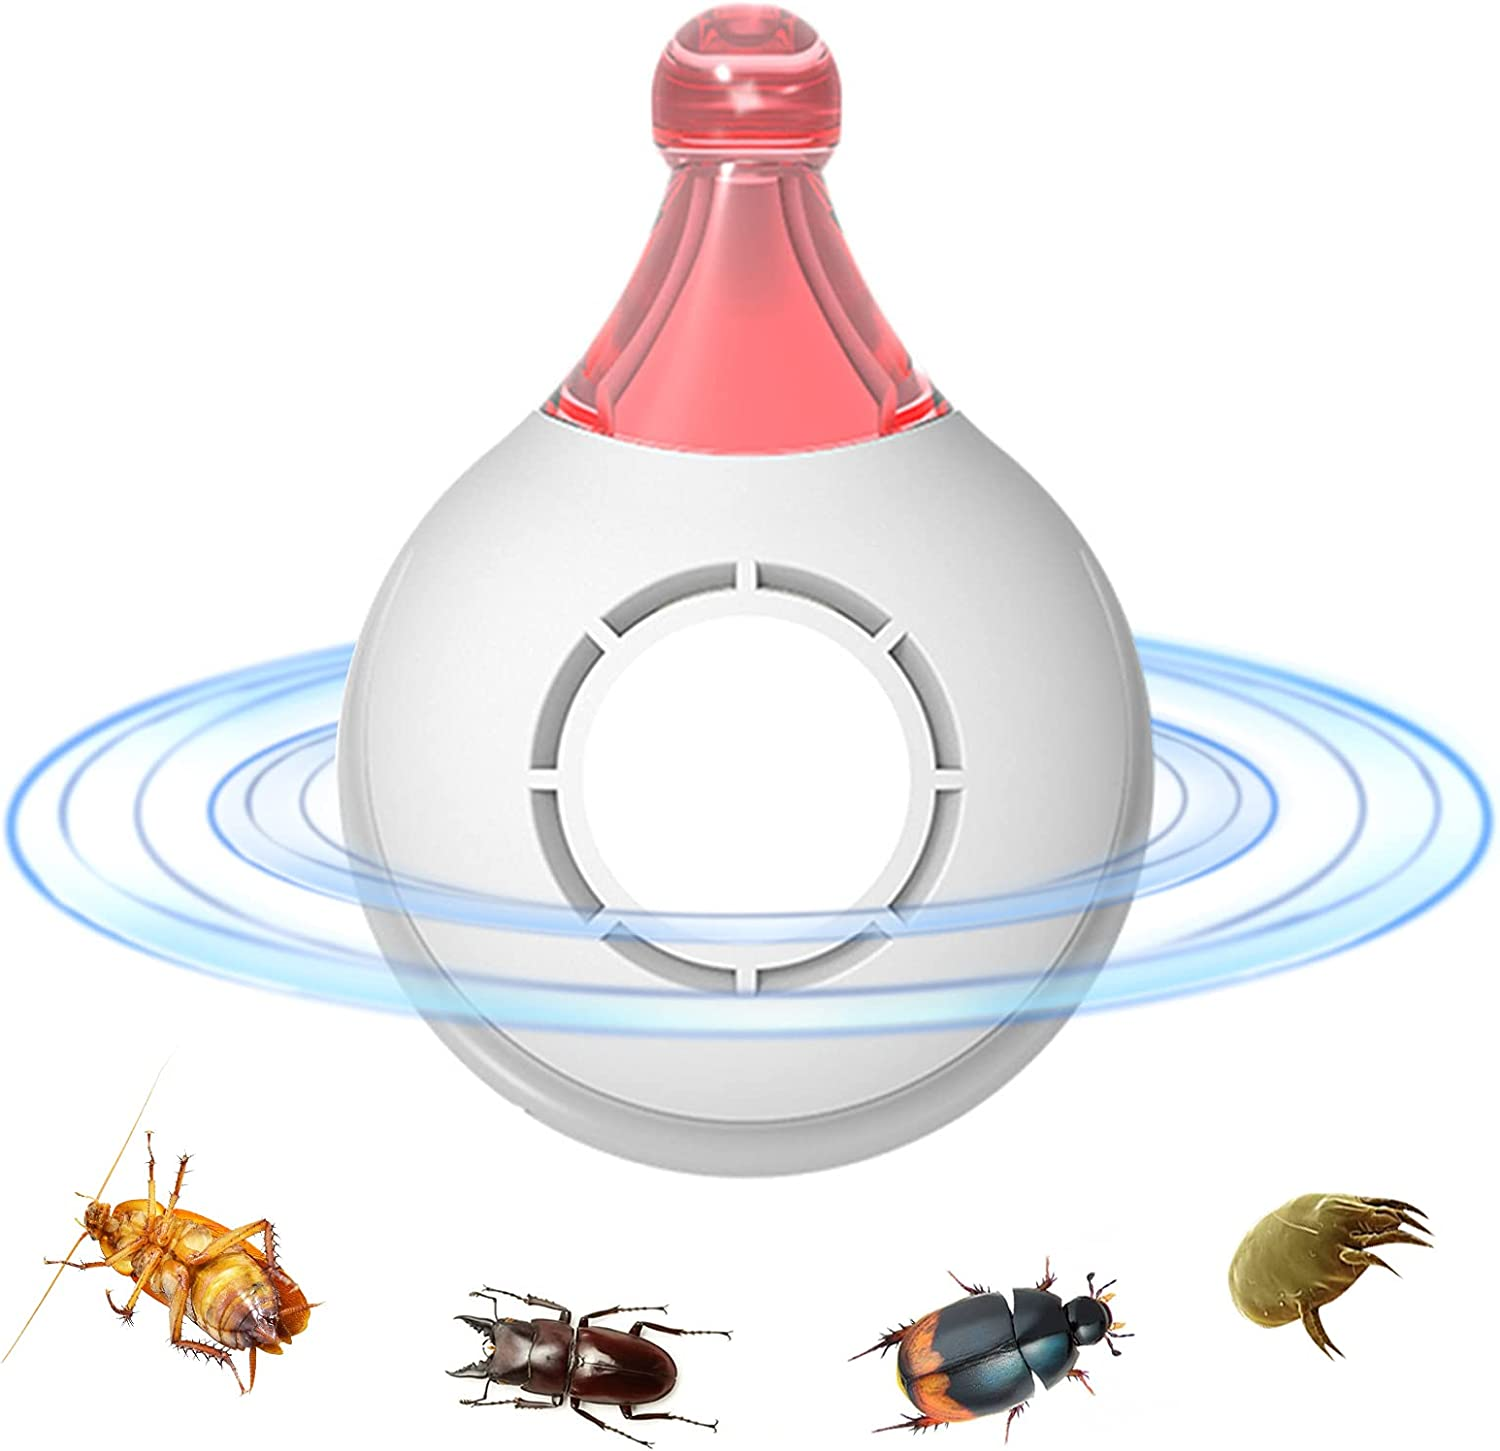 Pets Ultrasonic Repeller Flea Prevention and Tick Control Insect Repellent Pest Flea Tick Lice Repeller Pet Supply Travel Repellent Rechargeable Chemical-Free Pet Accessories for Maximum Protectio